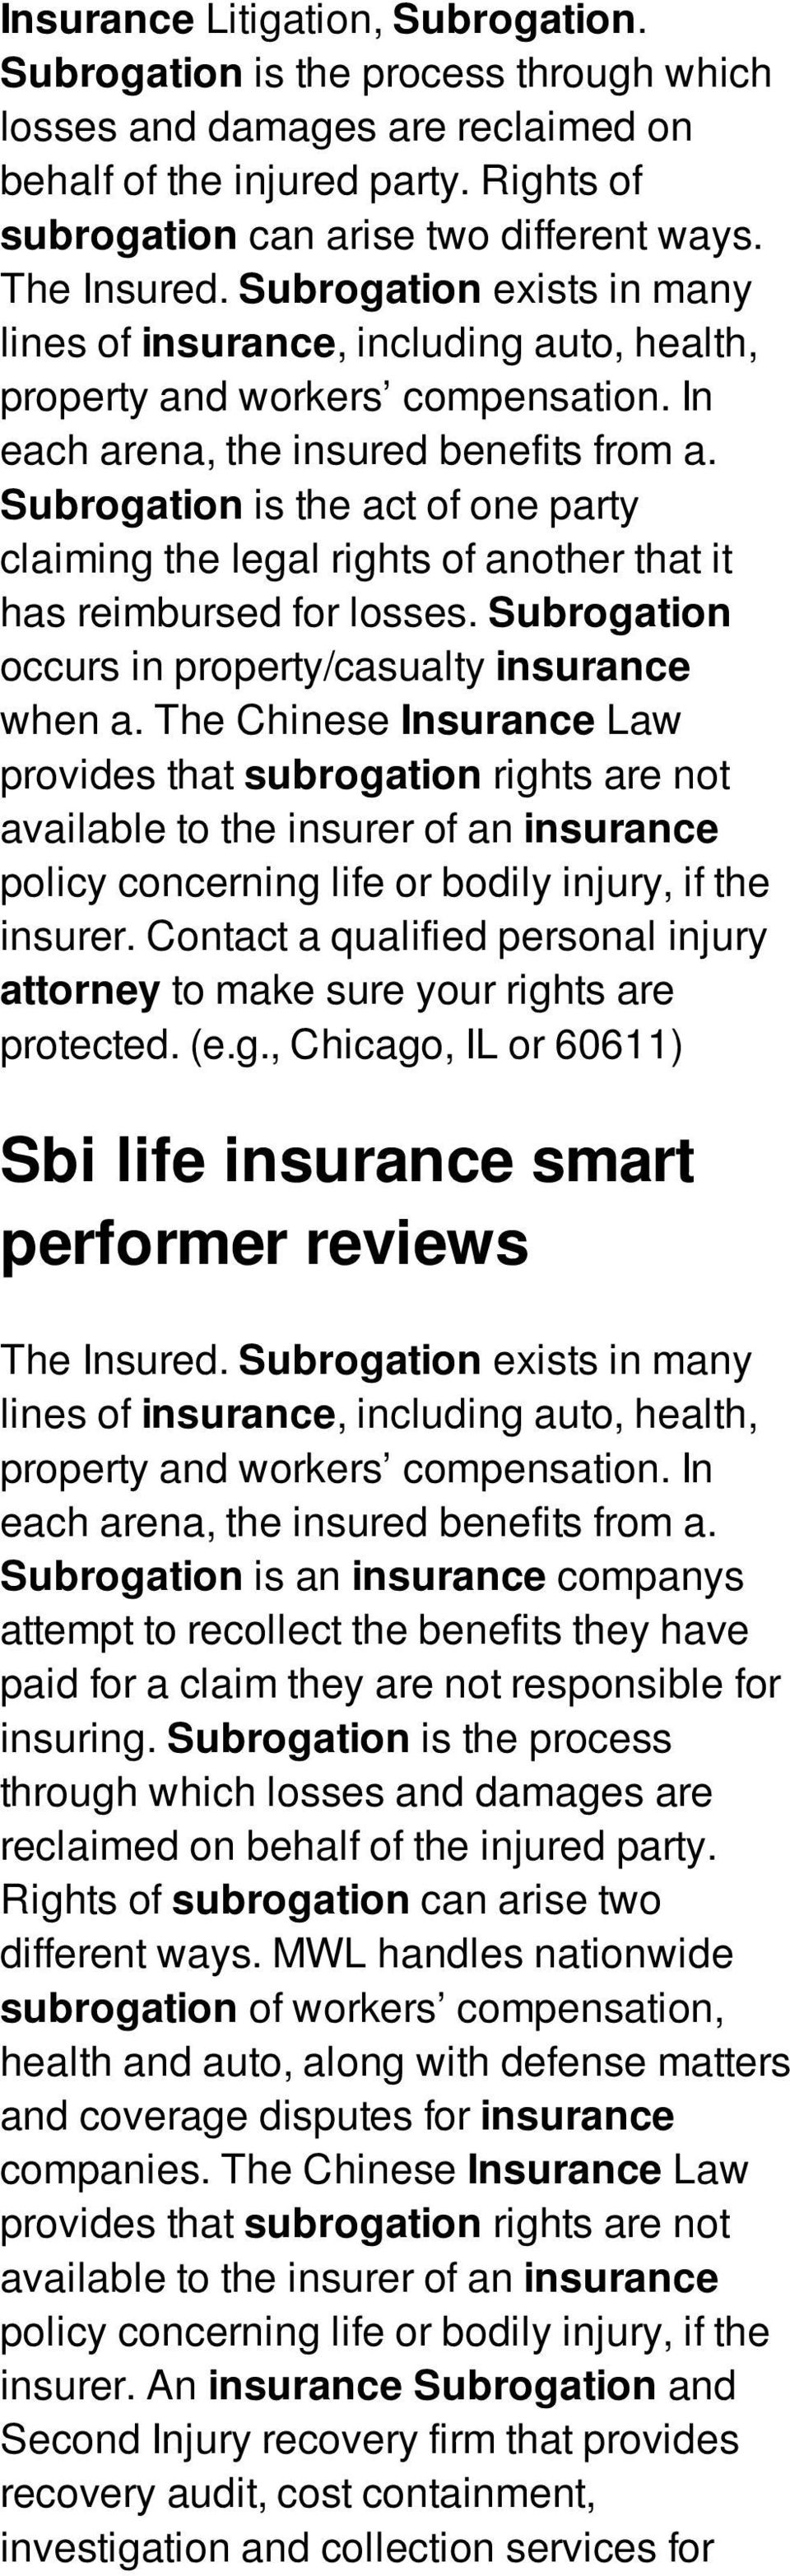 Subrogation is the act of one party claiming the legal rights of another that it has reimbursed for losses. Subrogation occurs in property/casualty insurance when a.